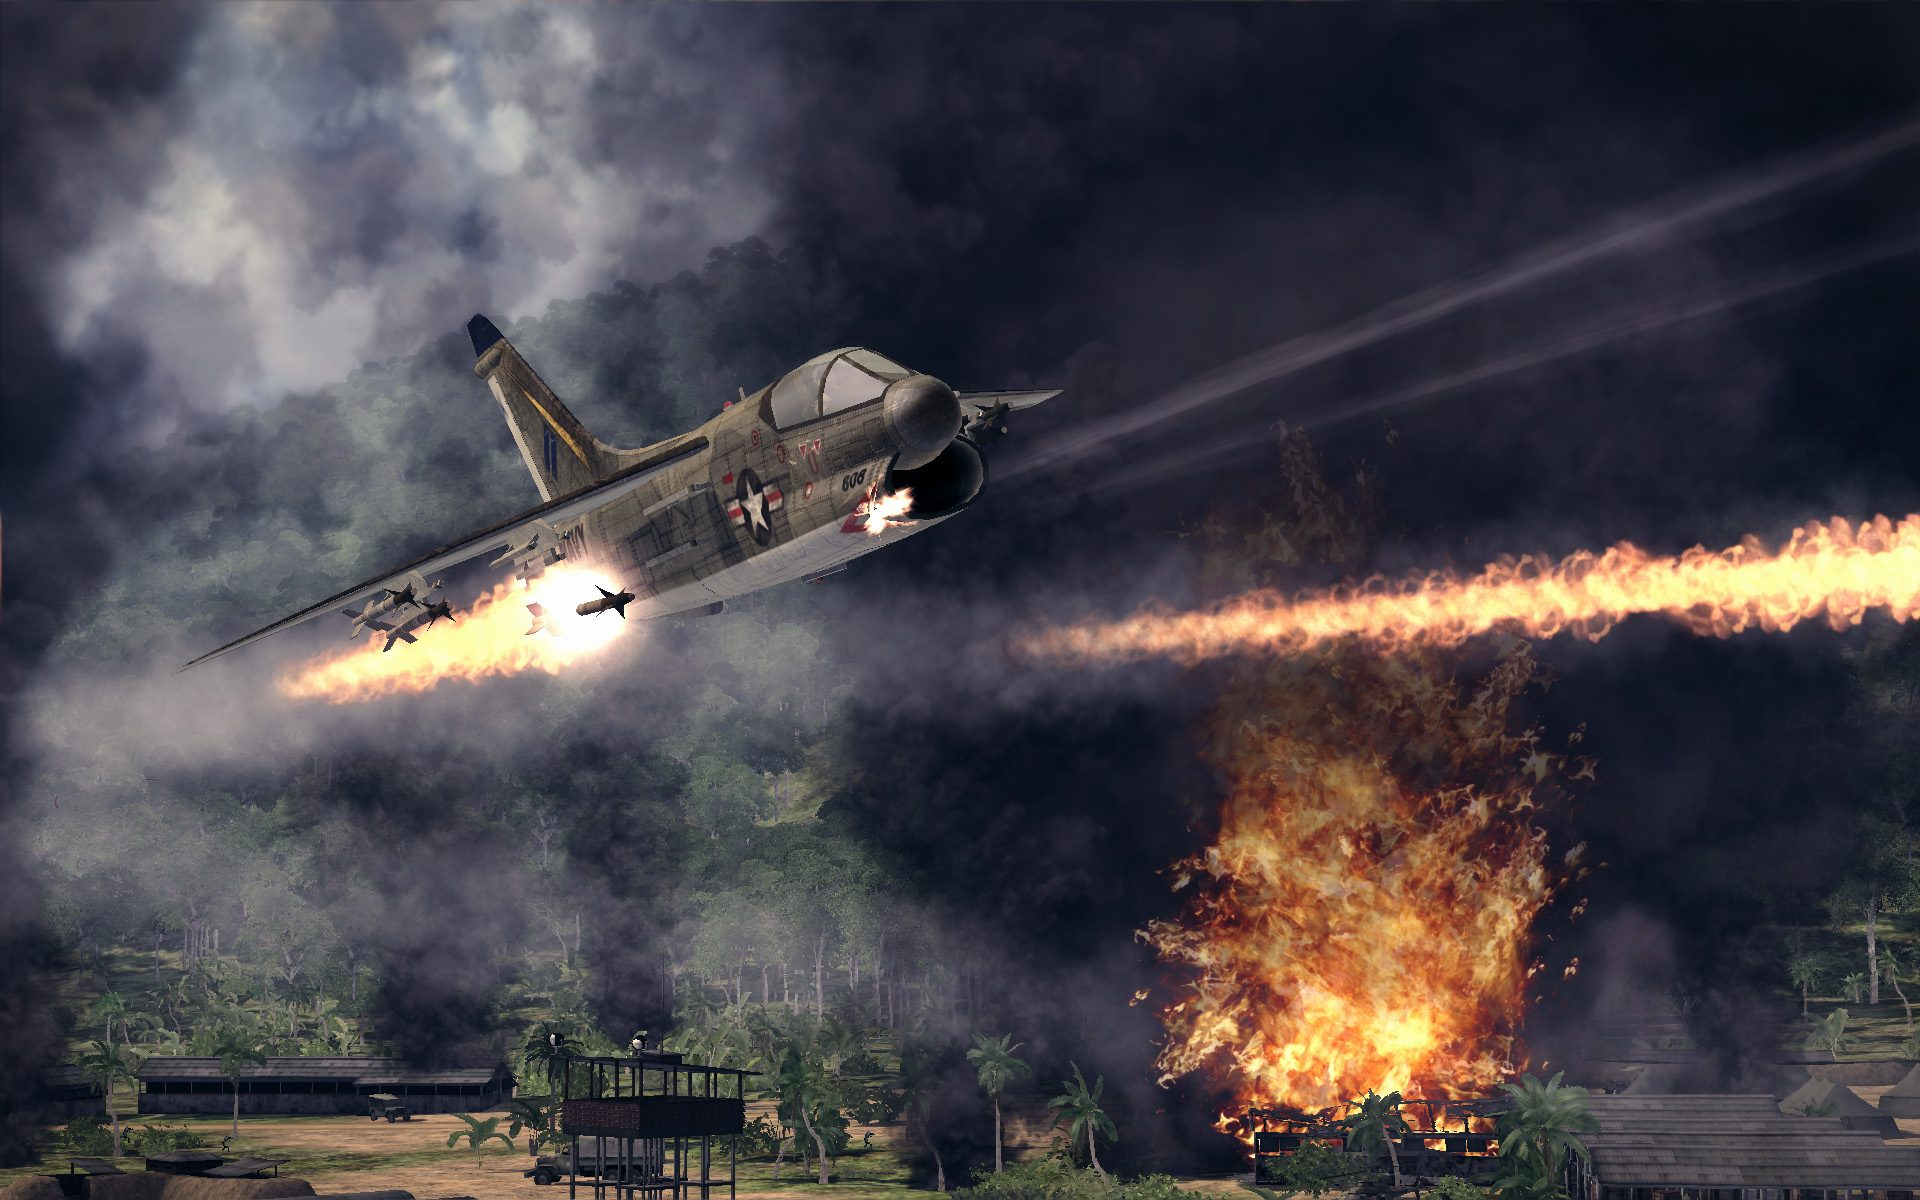 helicopter games online free play with Cid Up2060 Npub31335 00 Airconflictsviet on Super Mario Games moreover Transportation Flashcards further Police furthermore Cid UP2060 NPUB31335 00 AIRCONFLICTSVIET in addition Harvest Moon Back To Nature Sony Playstation.